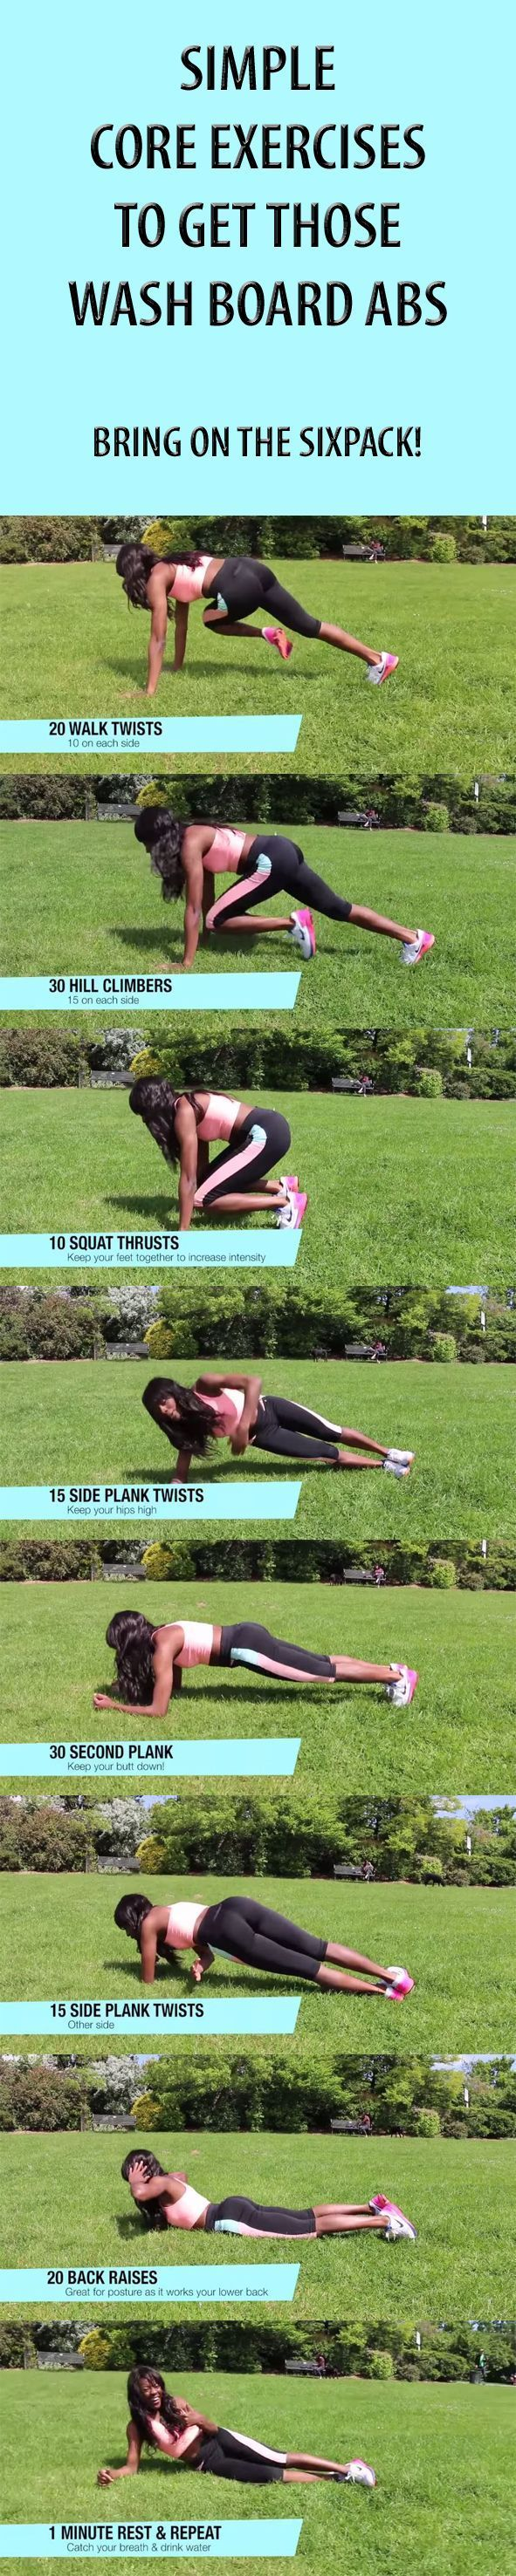 Fancy a washboard stomach that actually reveals the abs we all have? Well look no further. We have simple core exercises that will get you right on track with a quick yet effective workout. #abs #sixpack #workout #exercises #fitness #core #workouttips